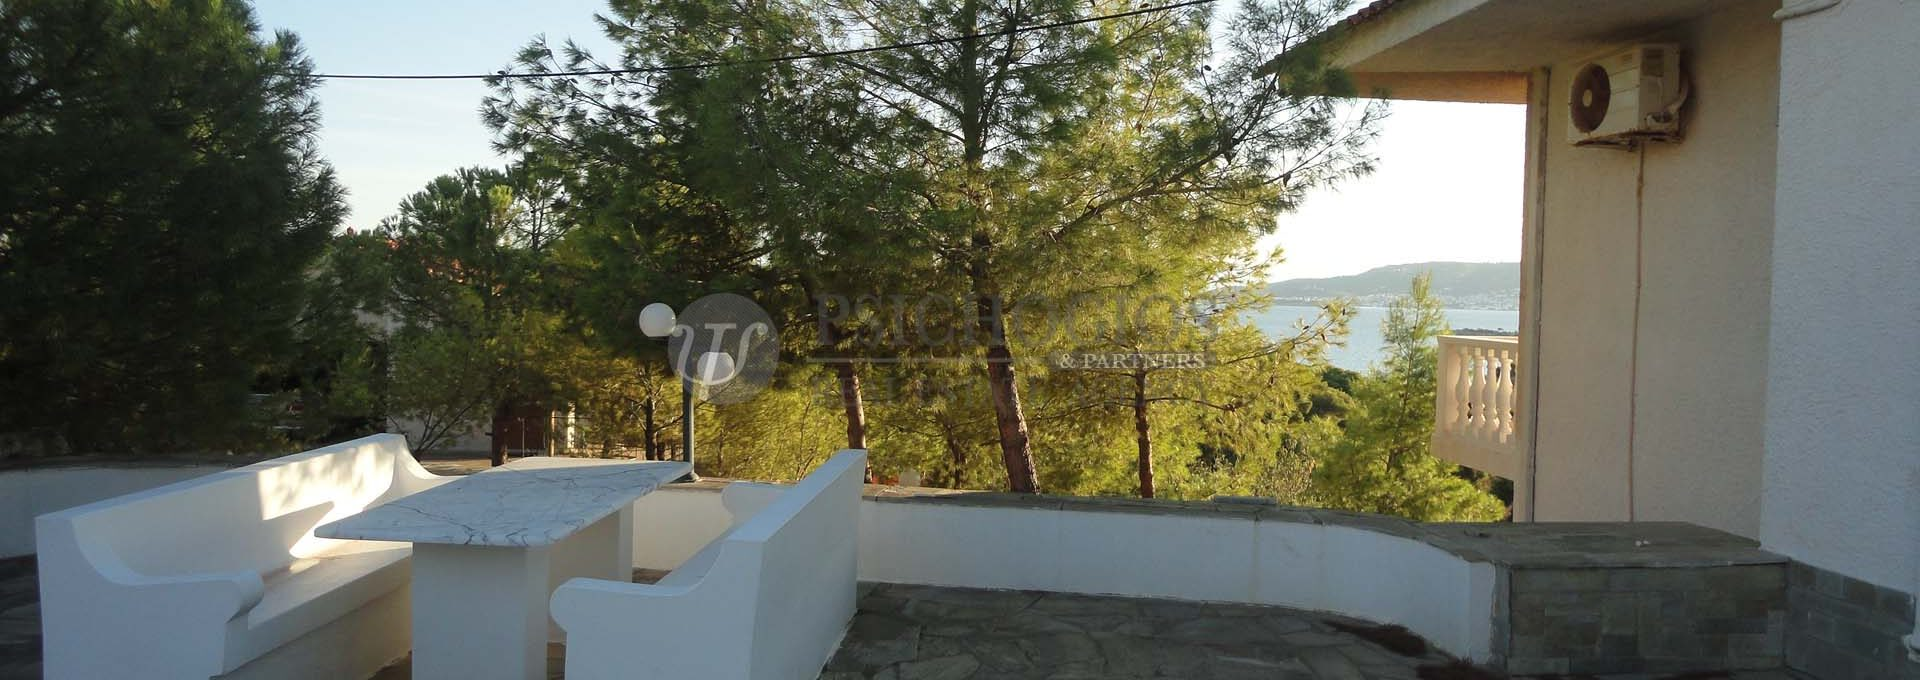 for_sale_house_120_square_meters_3_bedrooms_amazing_view_Agios_Amilianos_Greece (6)